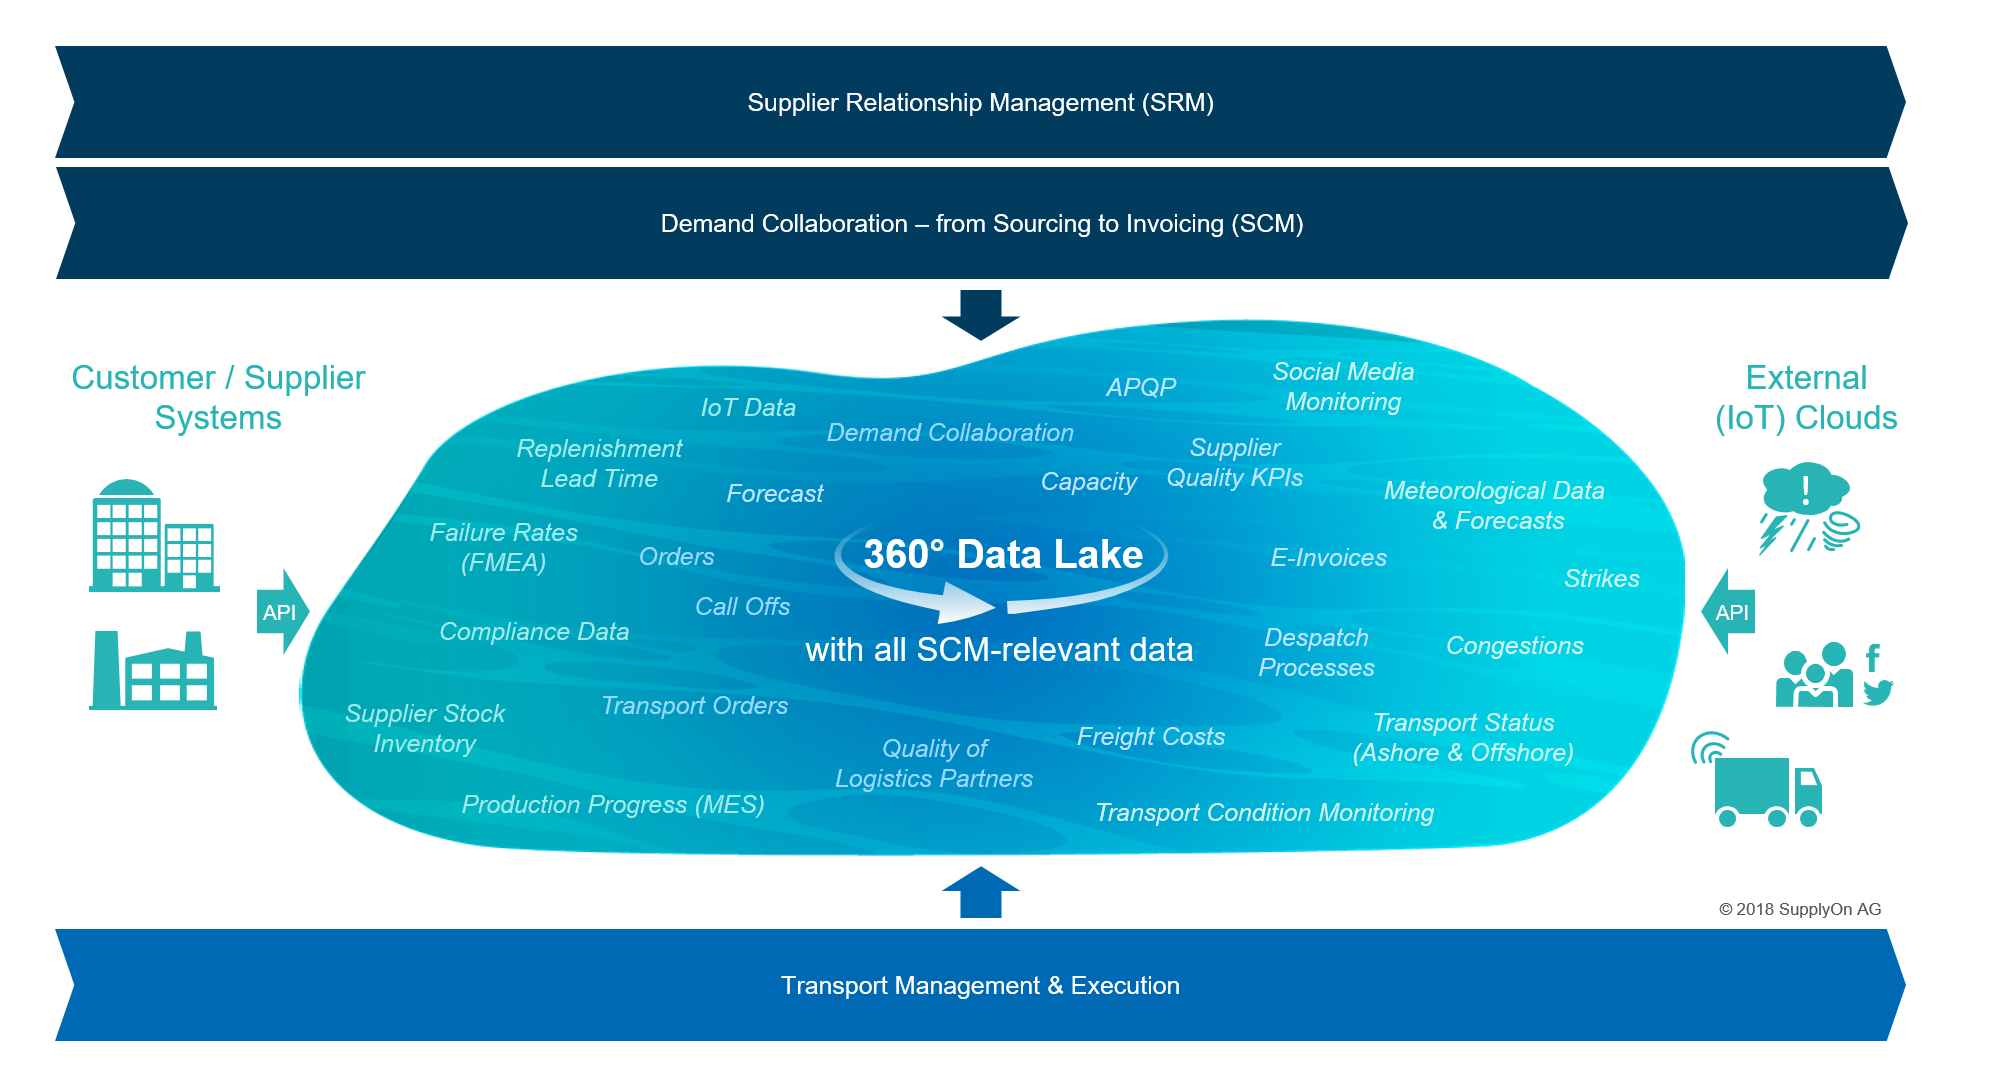 The SupplyOn 360 degree data lake processes all SCM-relevant data, be it from internal or external sources, out of the application itself as well as from your and your suppliers' systems